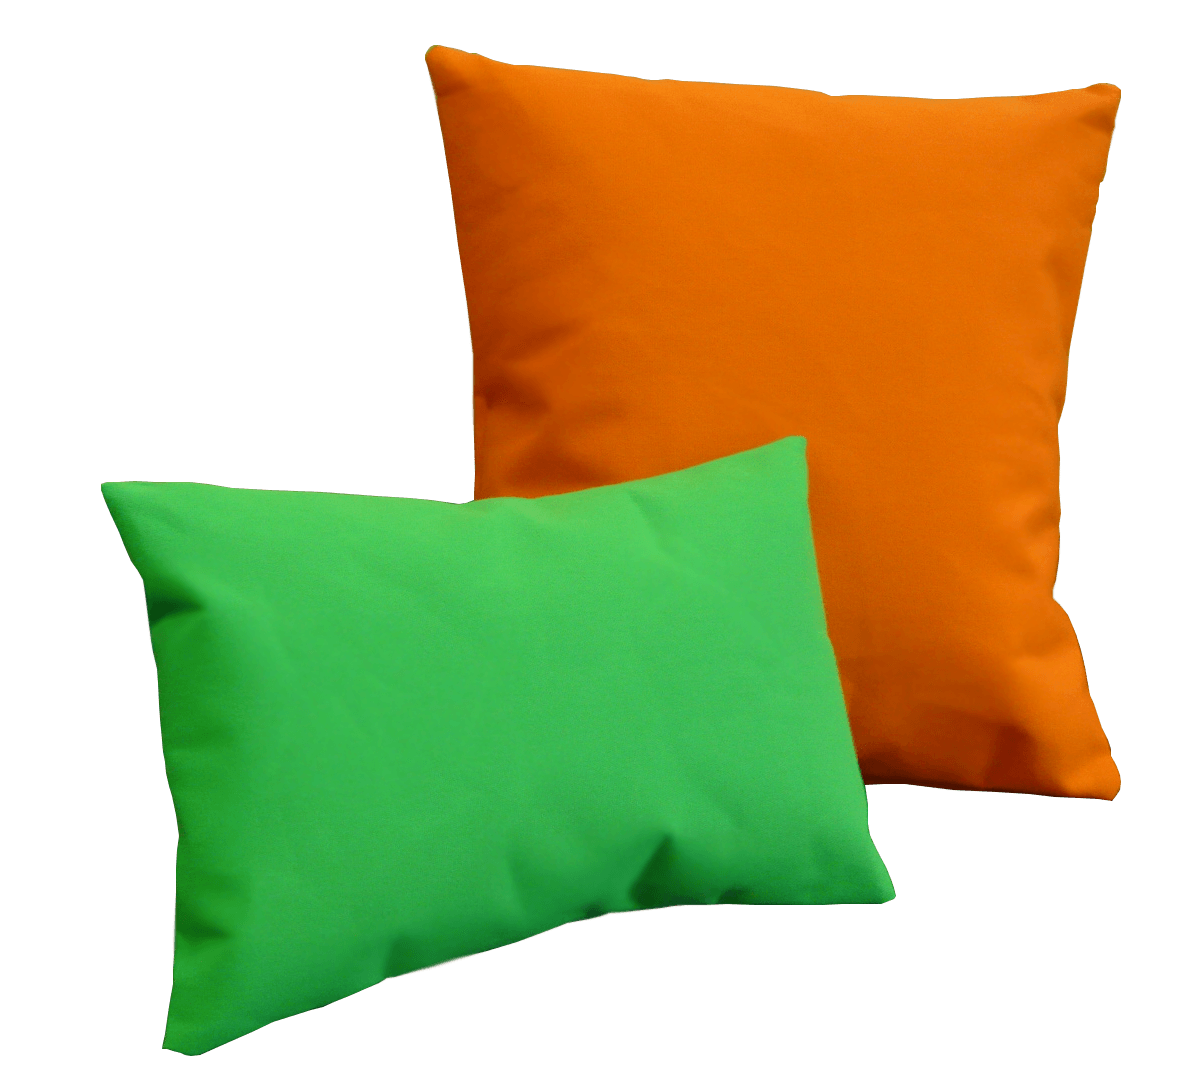 Pillow clipart sham. Png images free download